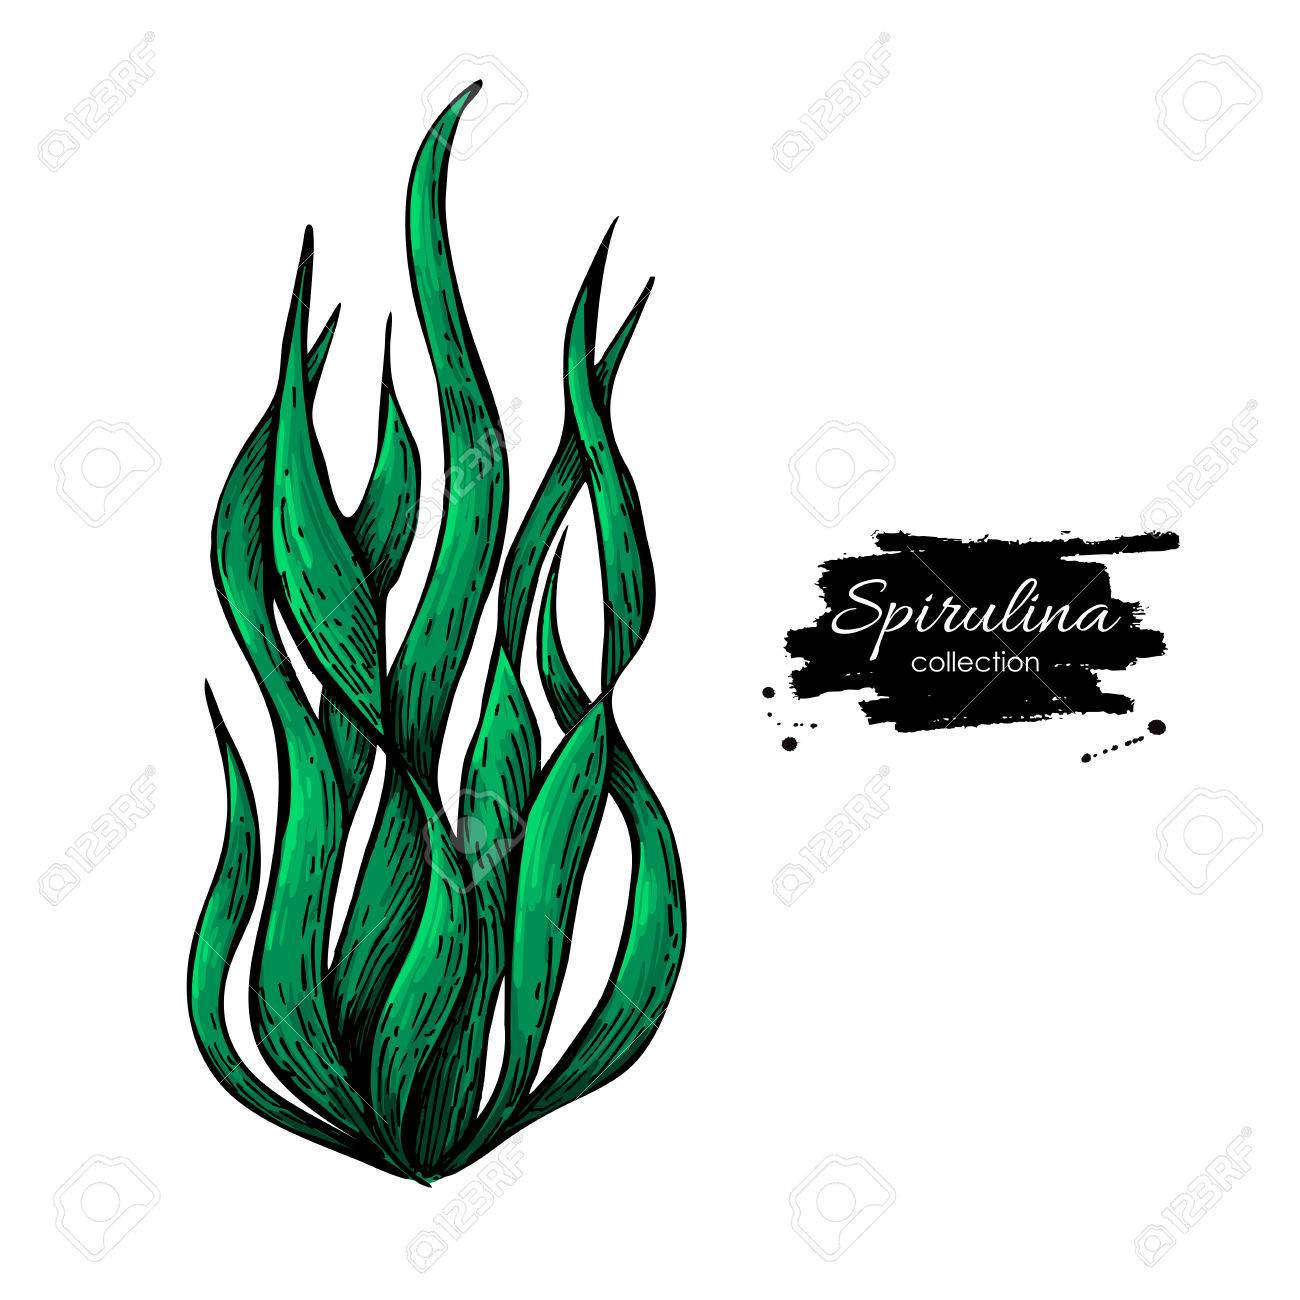 1300x1300 Spirulina Seaweed Powder Hand Drawn Vector Illustration. Isolated